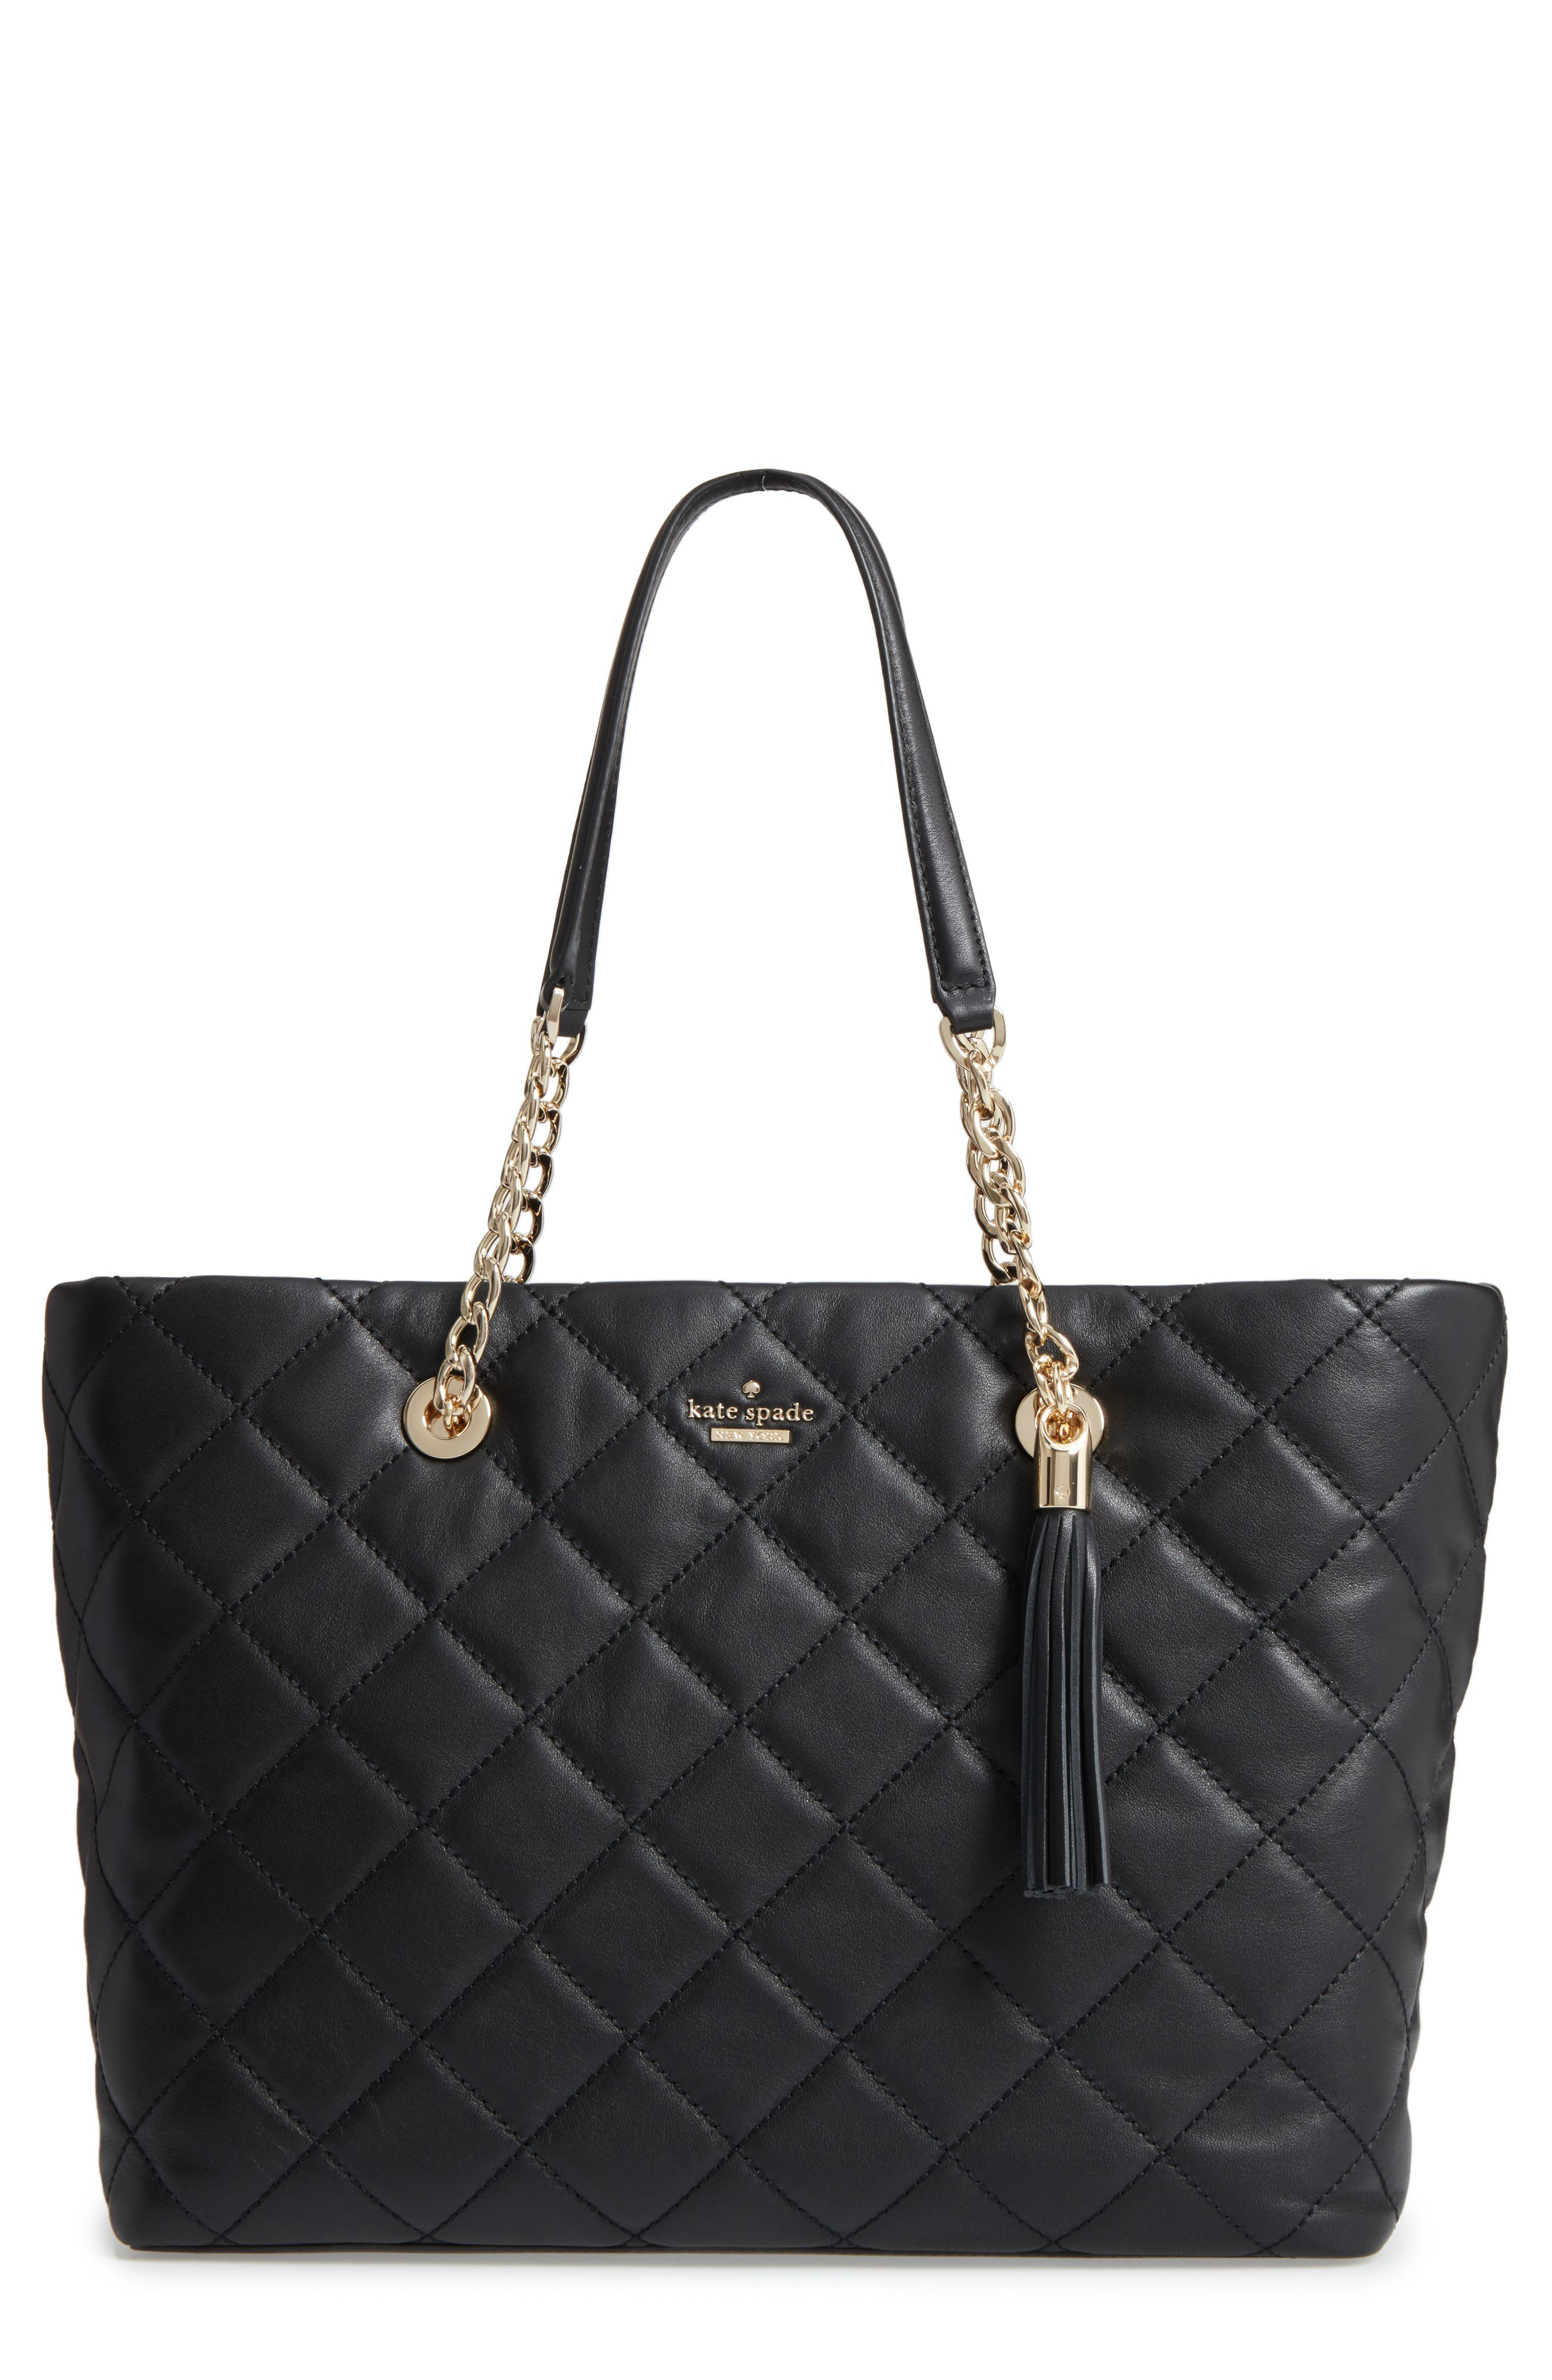 emerson place - priya quilted leather tote,                         Main,                         color, Black